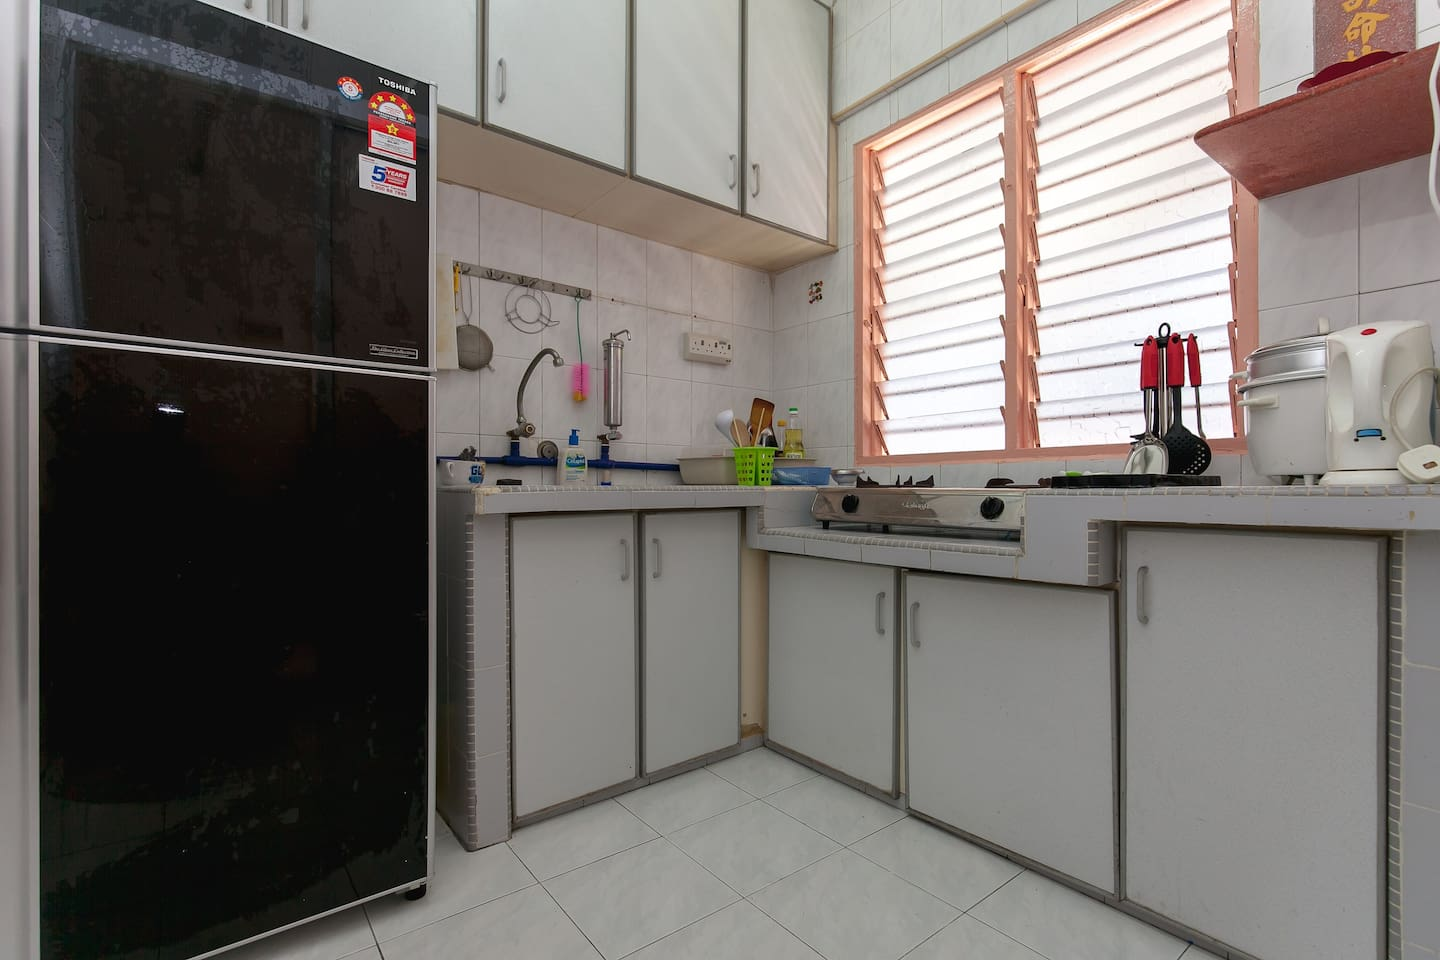 Fully equipped kitchen with kettle, gas stove, fridge, and kitchen utensils